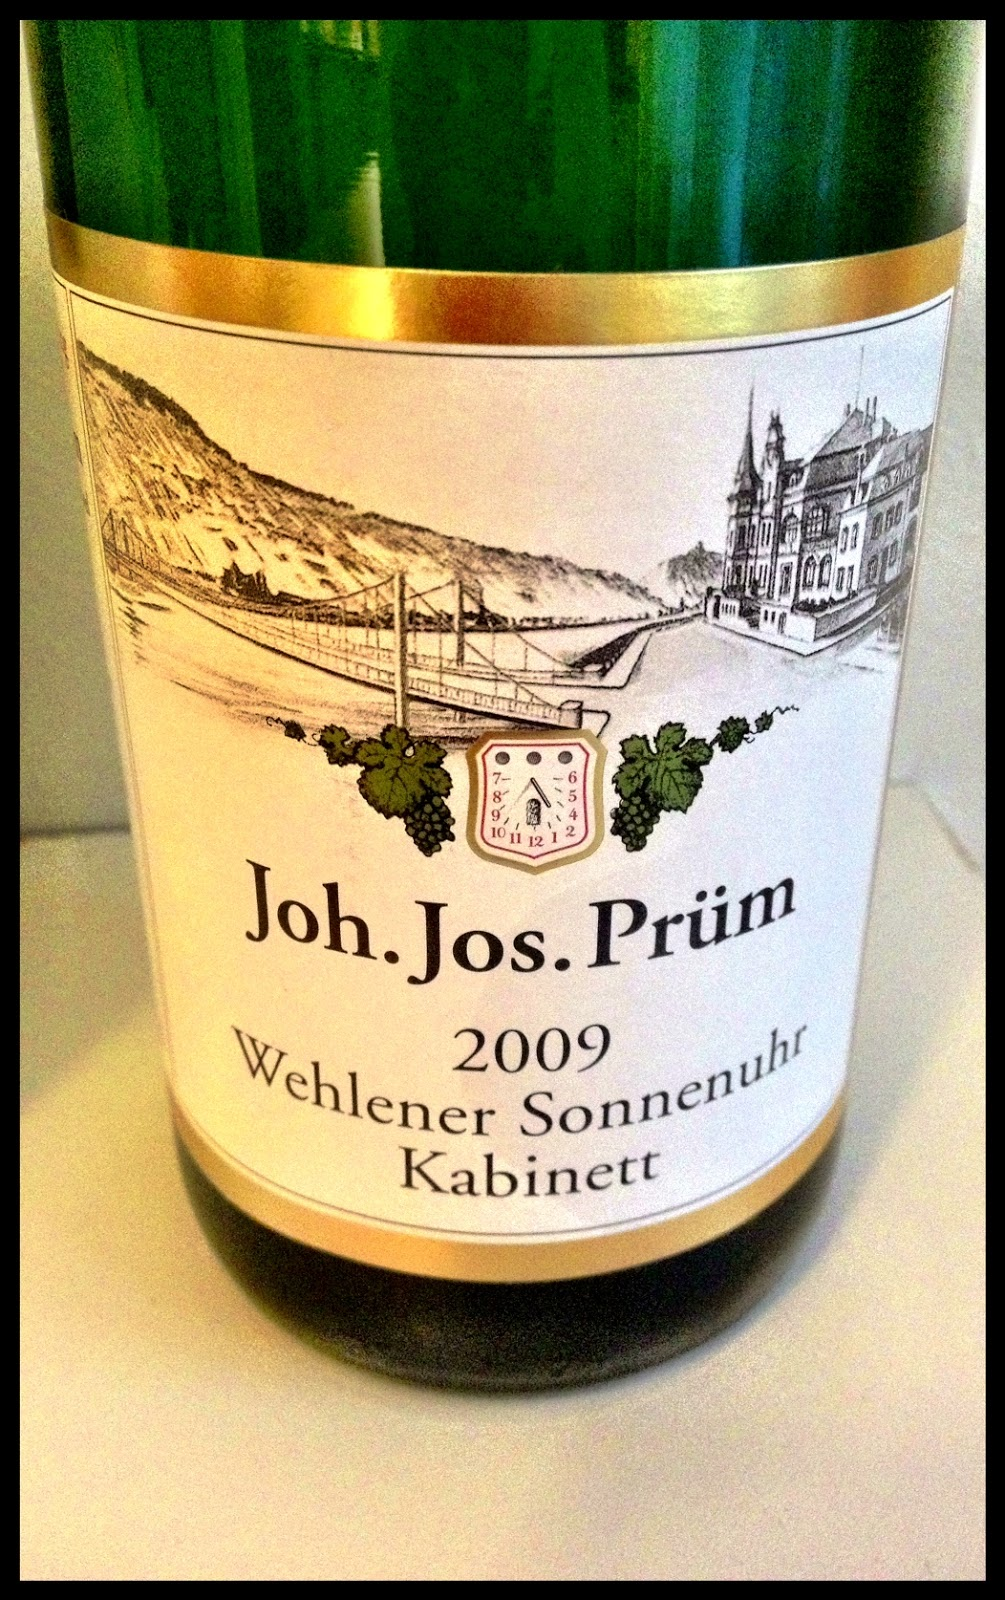 Tasting note on the 2009 Joh. Jos. Prm Wehlener Sonnenuhr Riesling Kabinett